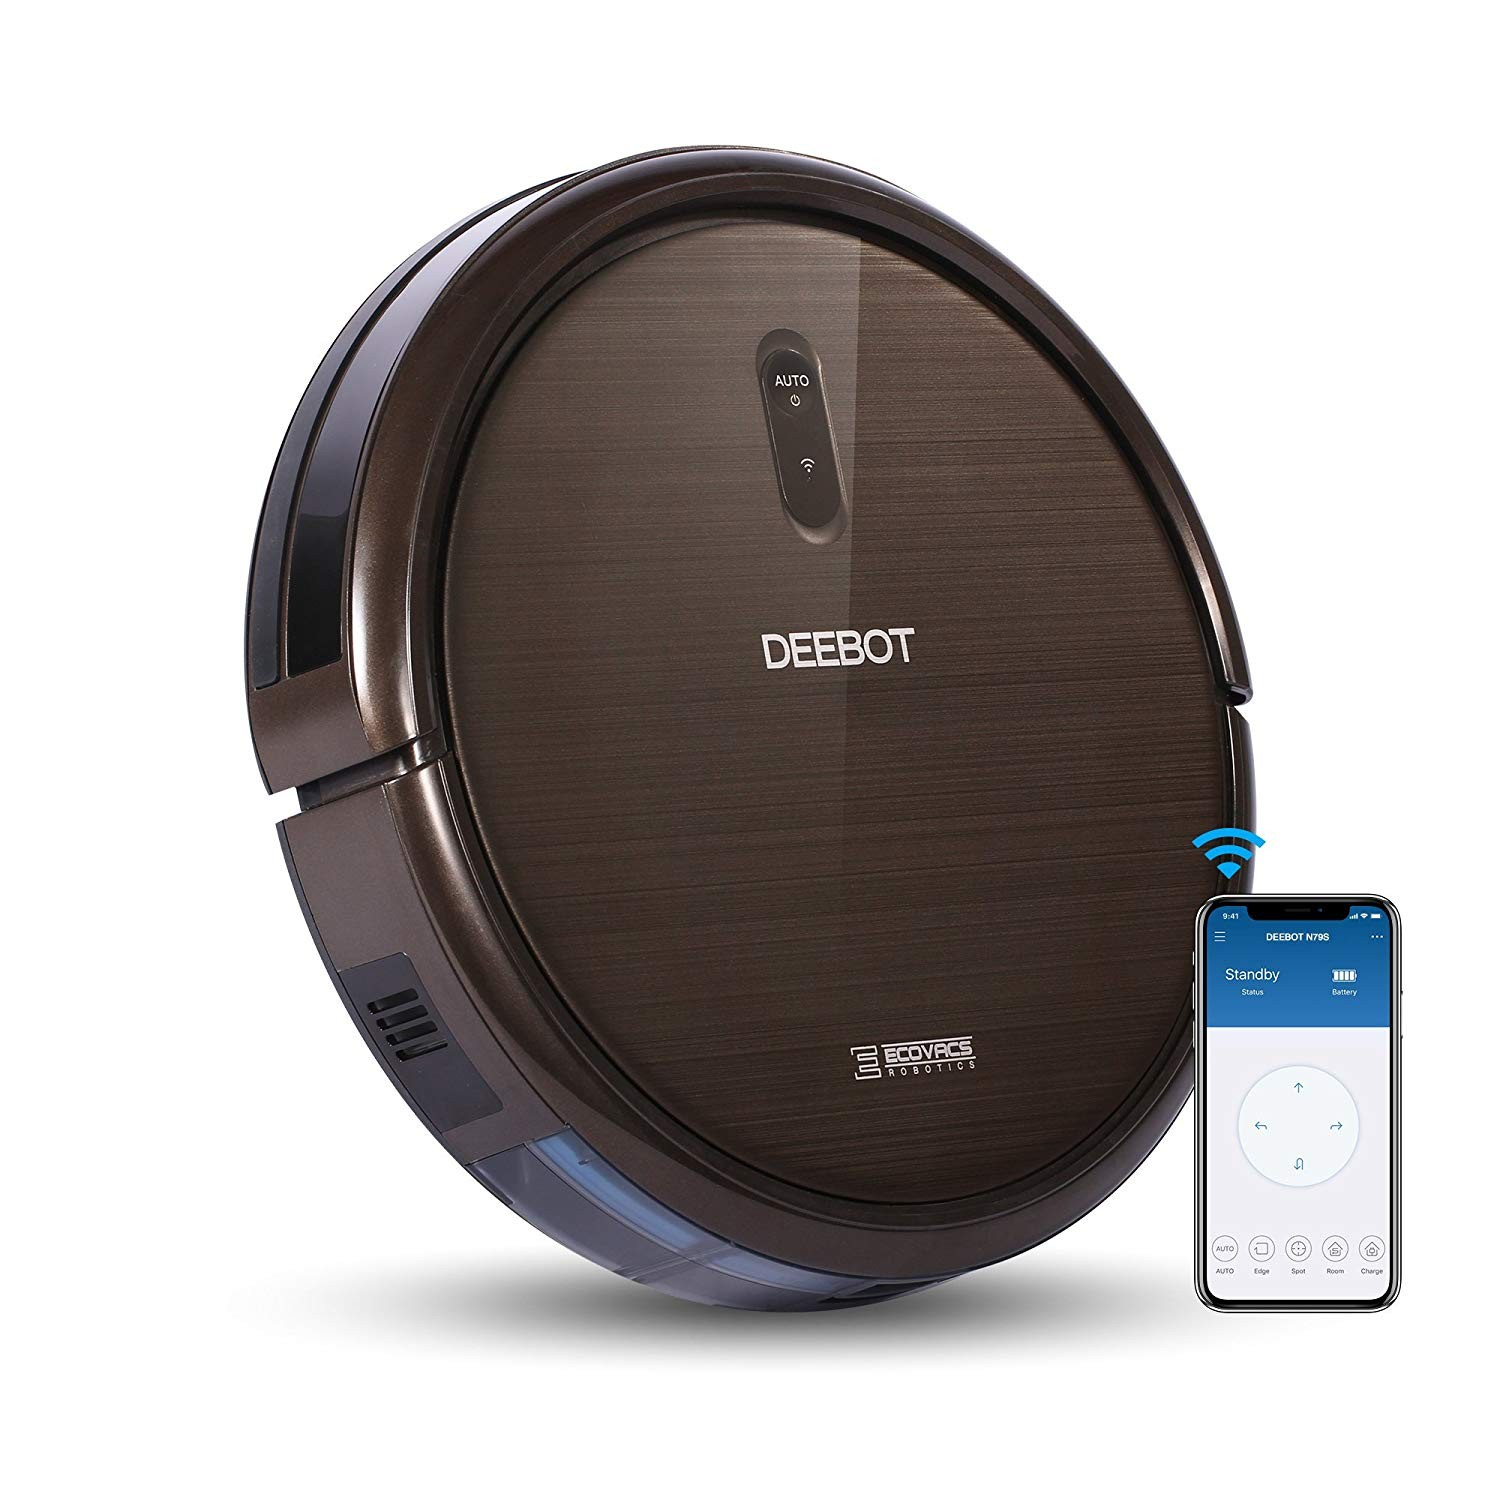 Amazon ECOVACS DEEBOT N79S Robot Vacuum Cleaner with Max Power Suction Alexa Connectivity App Controls Self Charging for Hard Surface Floors & Thin